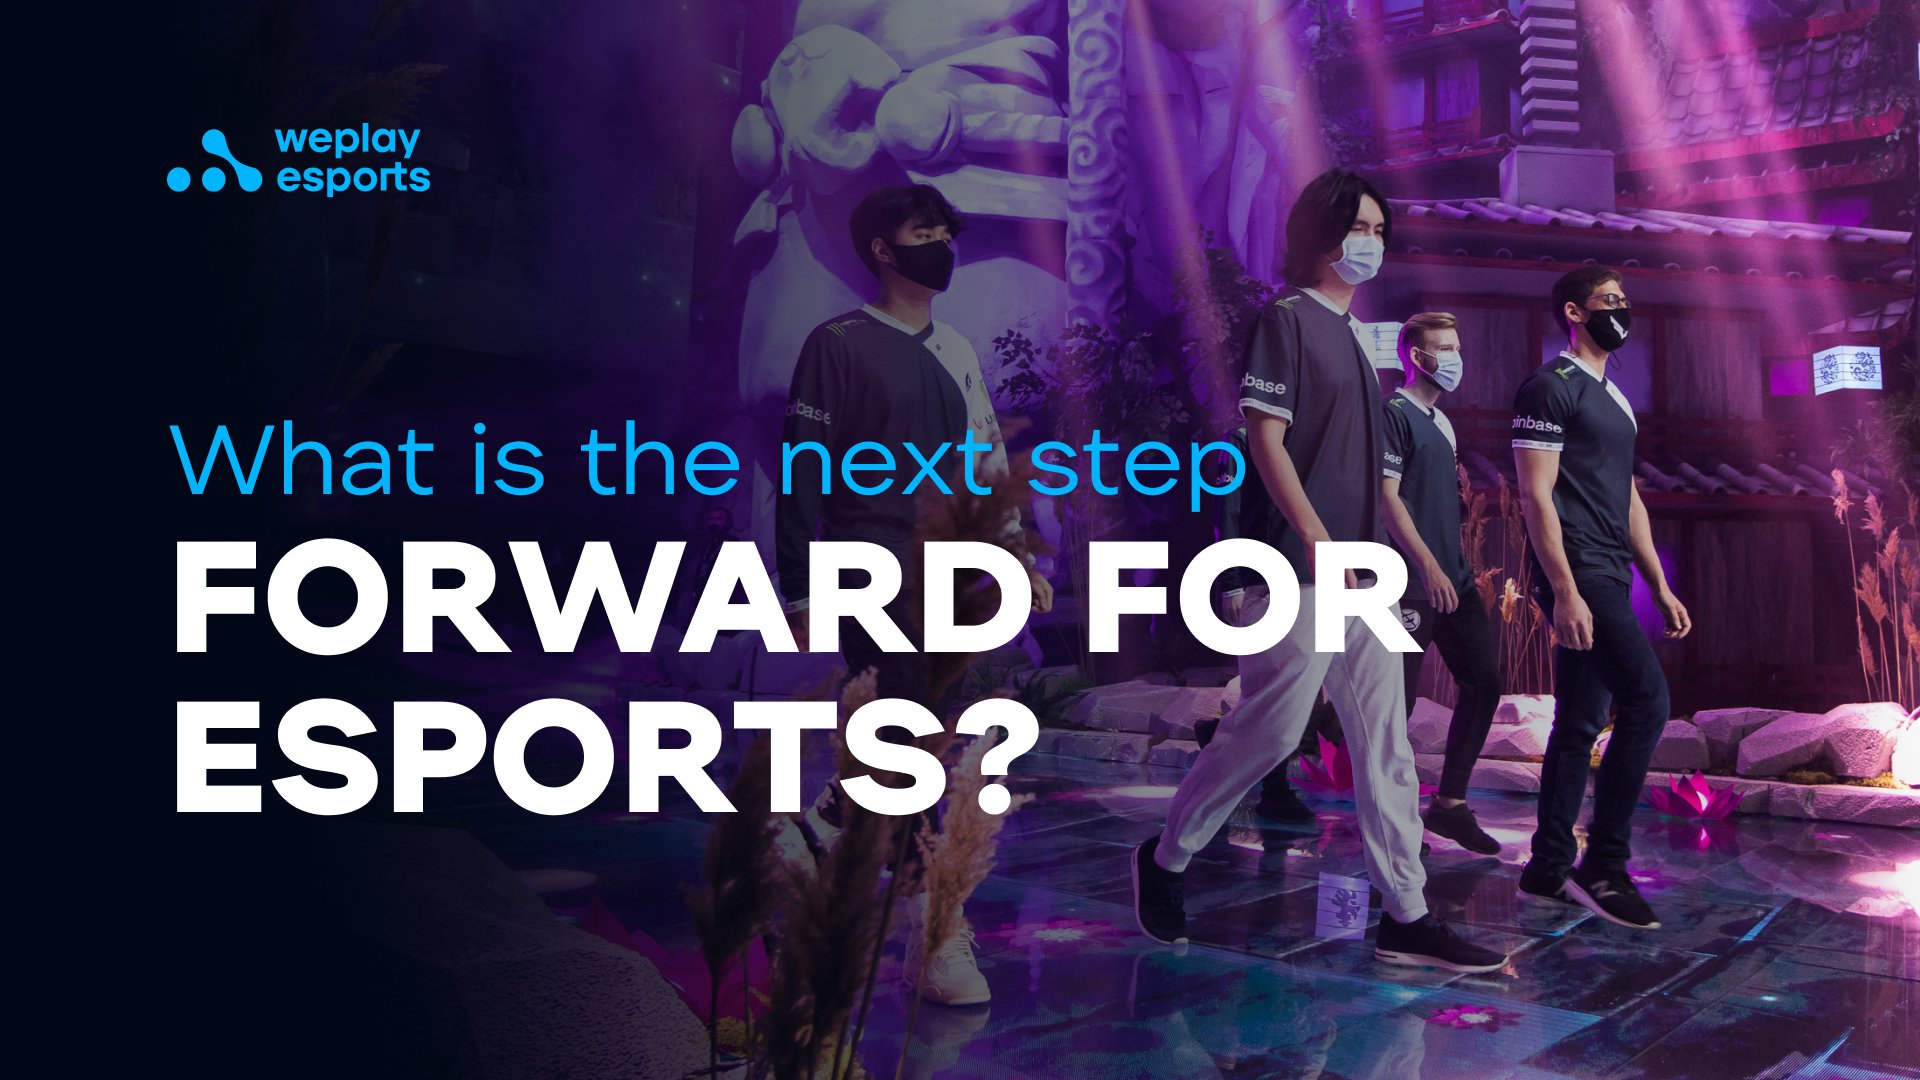 What is the next step forward for esports?